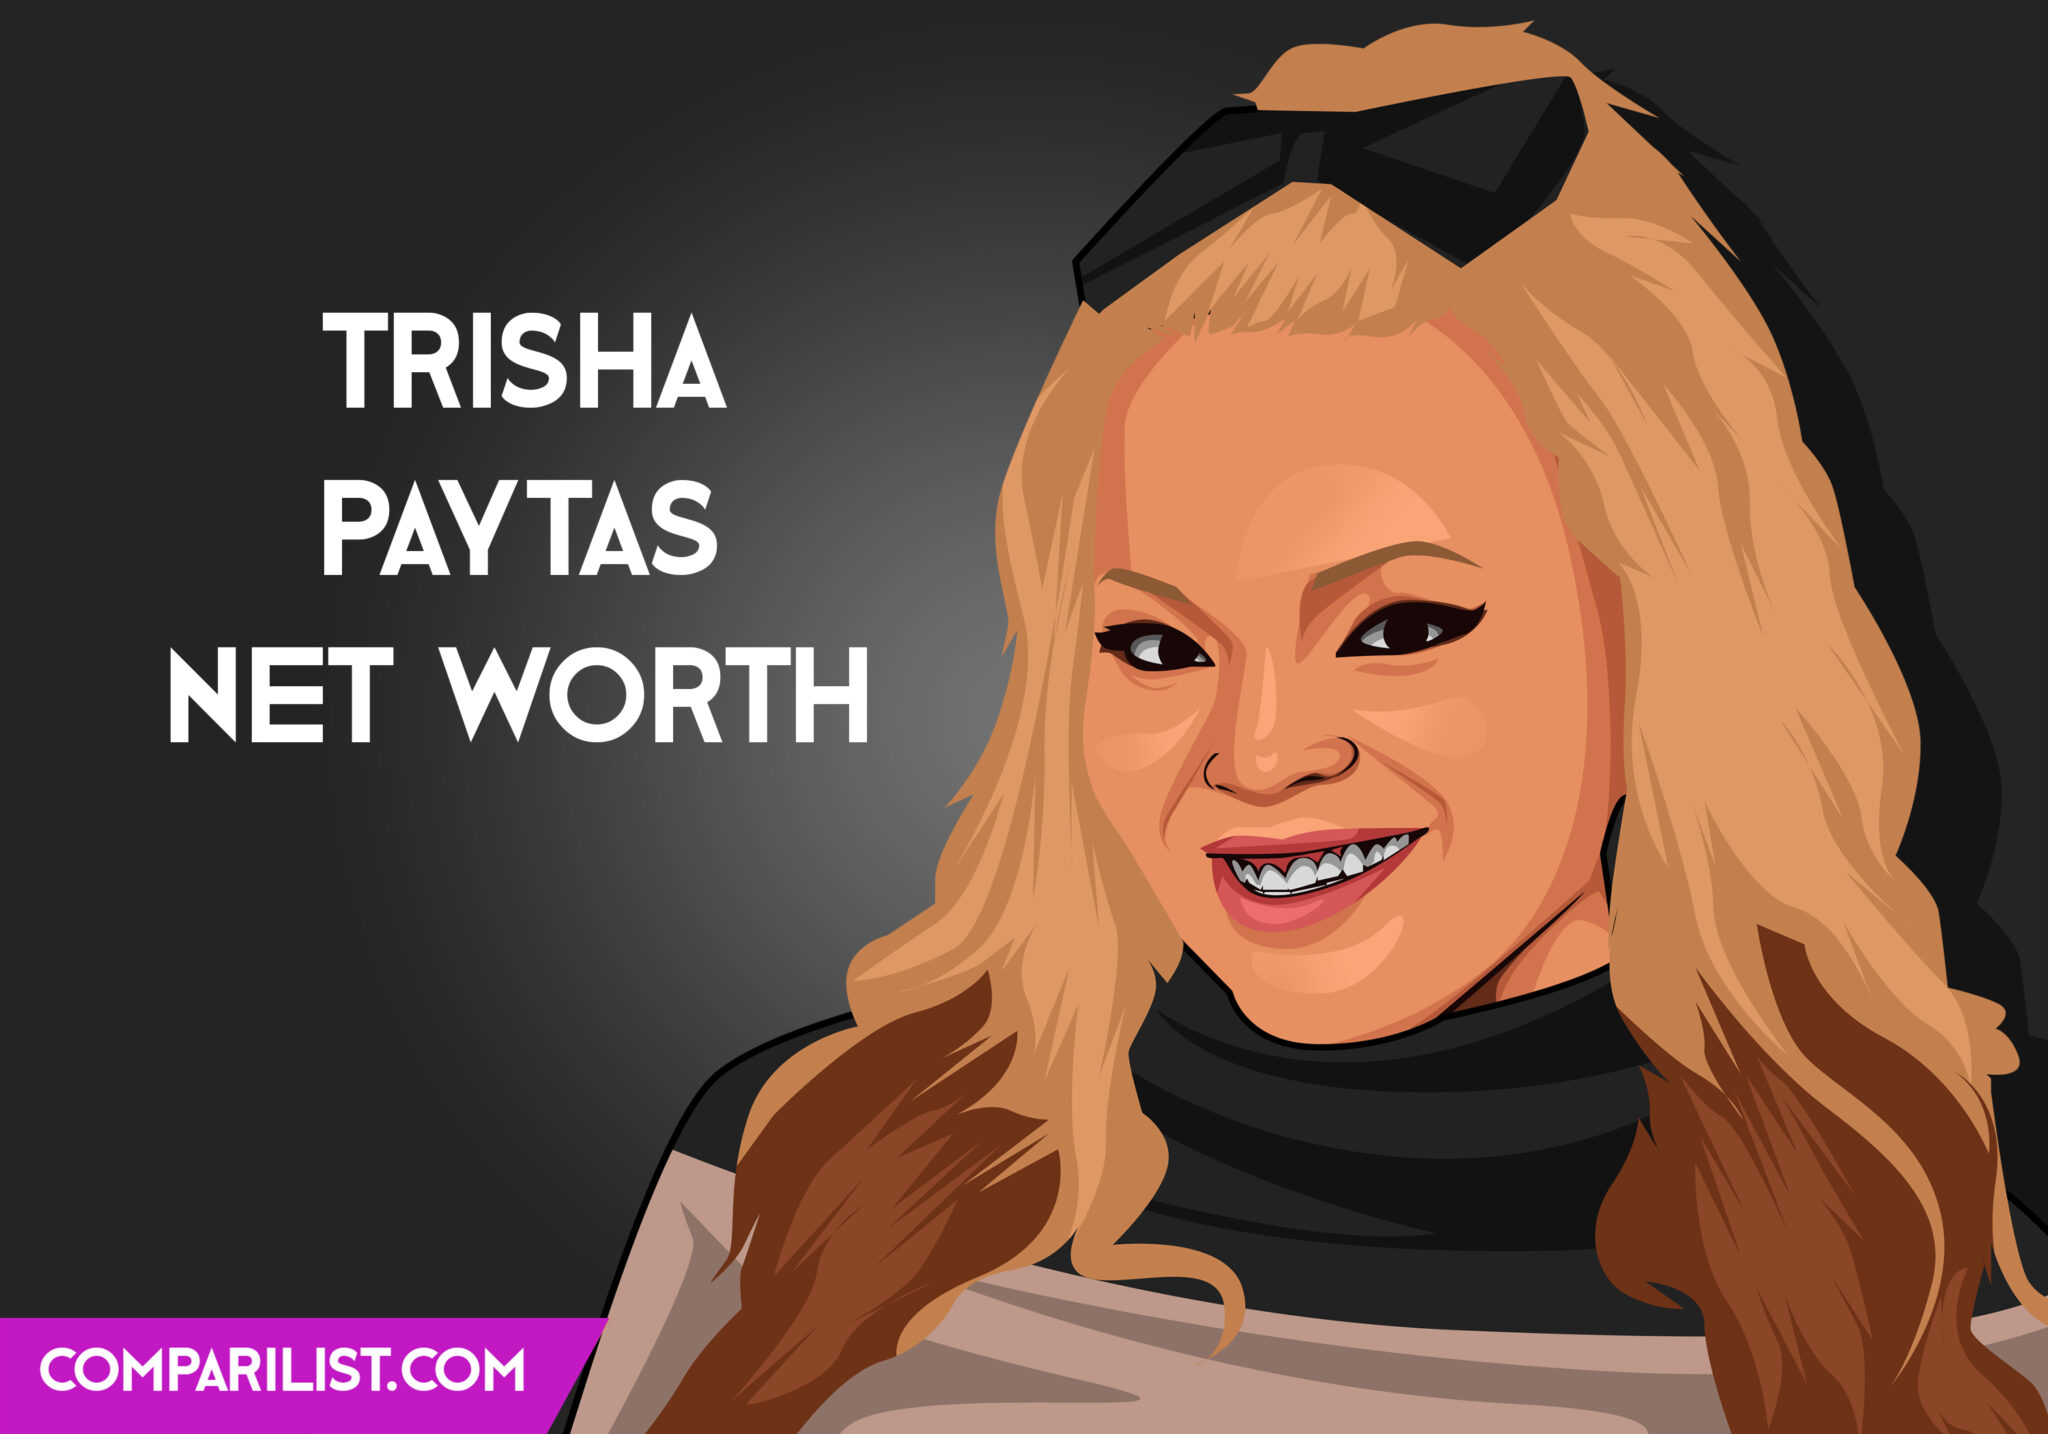 Trisha Paytas Net Worth 2019 Sources Of Income Salary And More